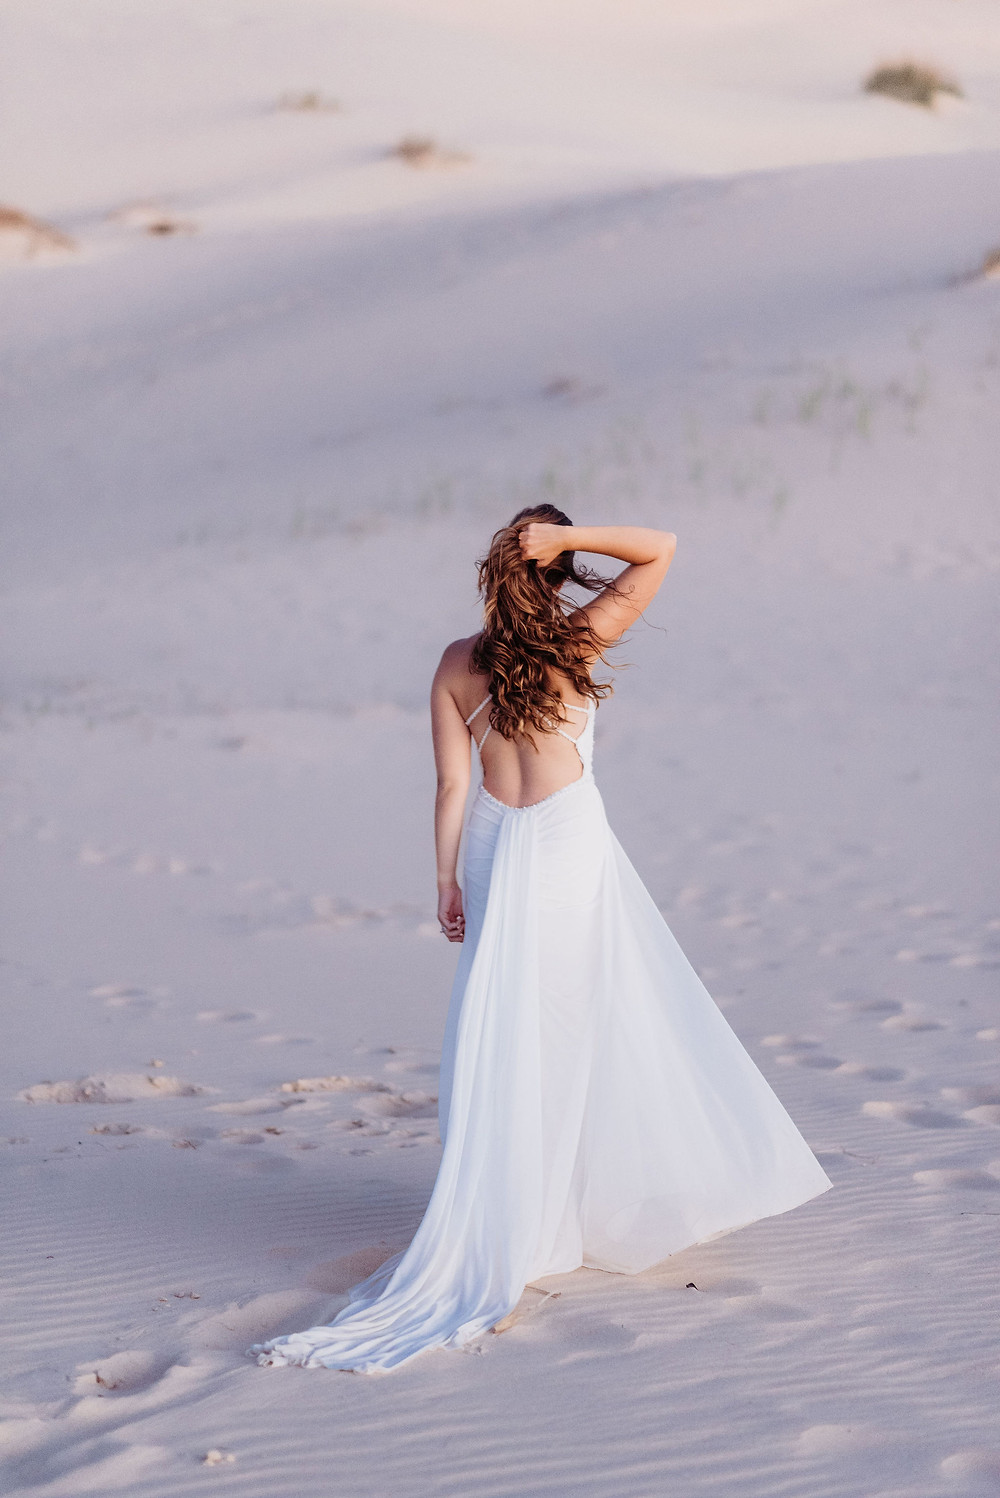 bride is alone facing away from the camera. she is holding her curly hair to keep it from blowing around from the wind. he dress is blowing in the wind